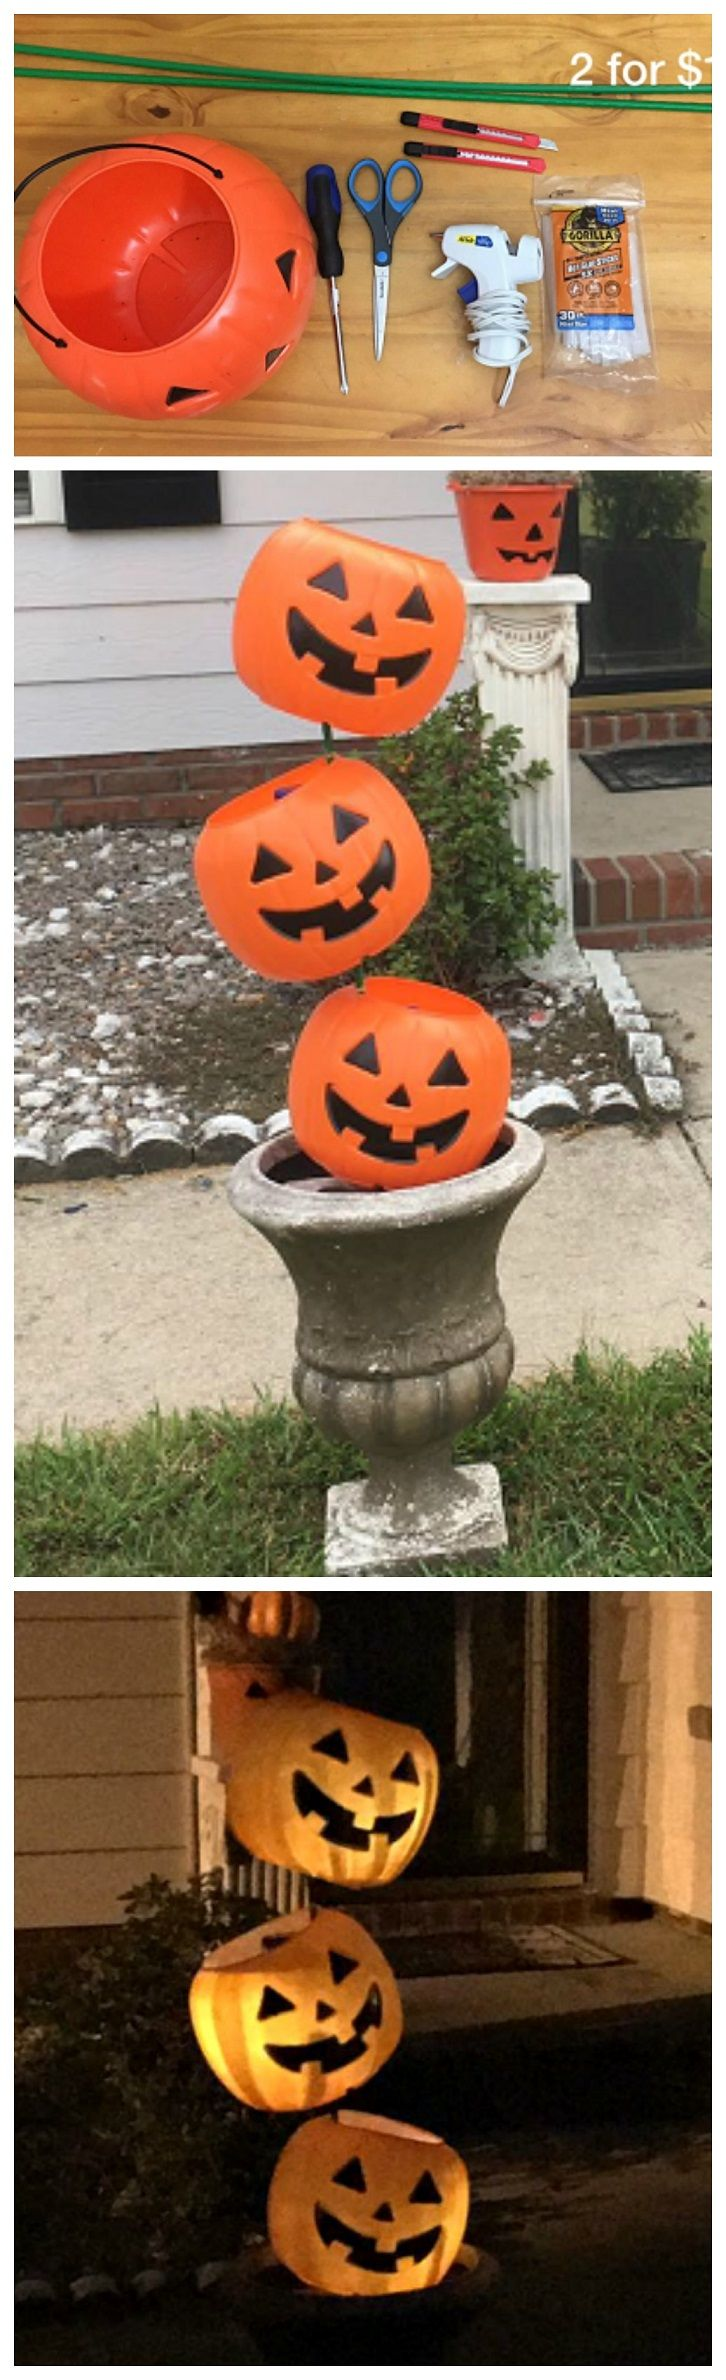 tipsy plastic pumpkin decoration homemade halloween - Simple Homemade Halloween Decorations